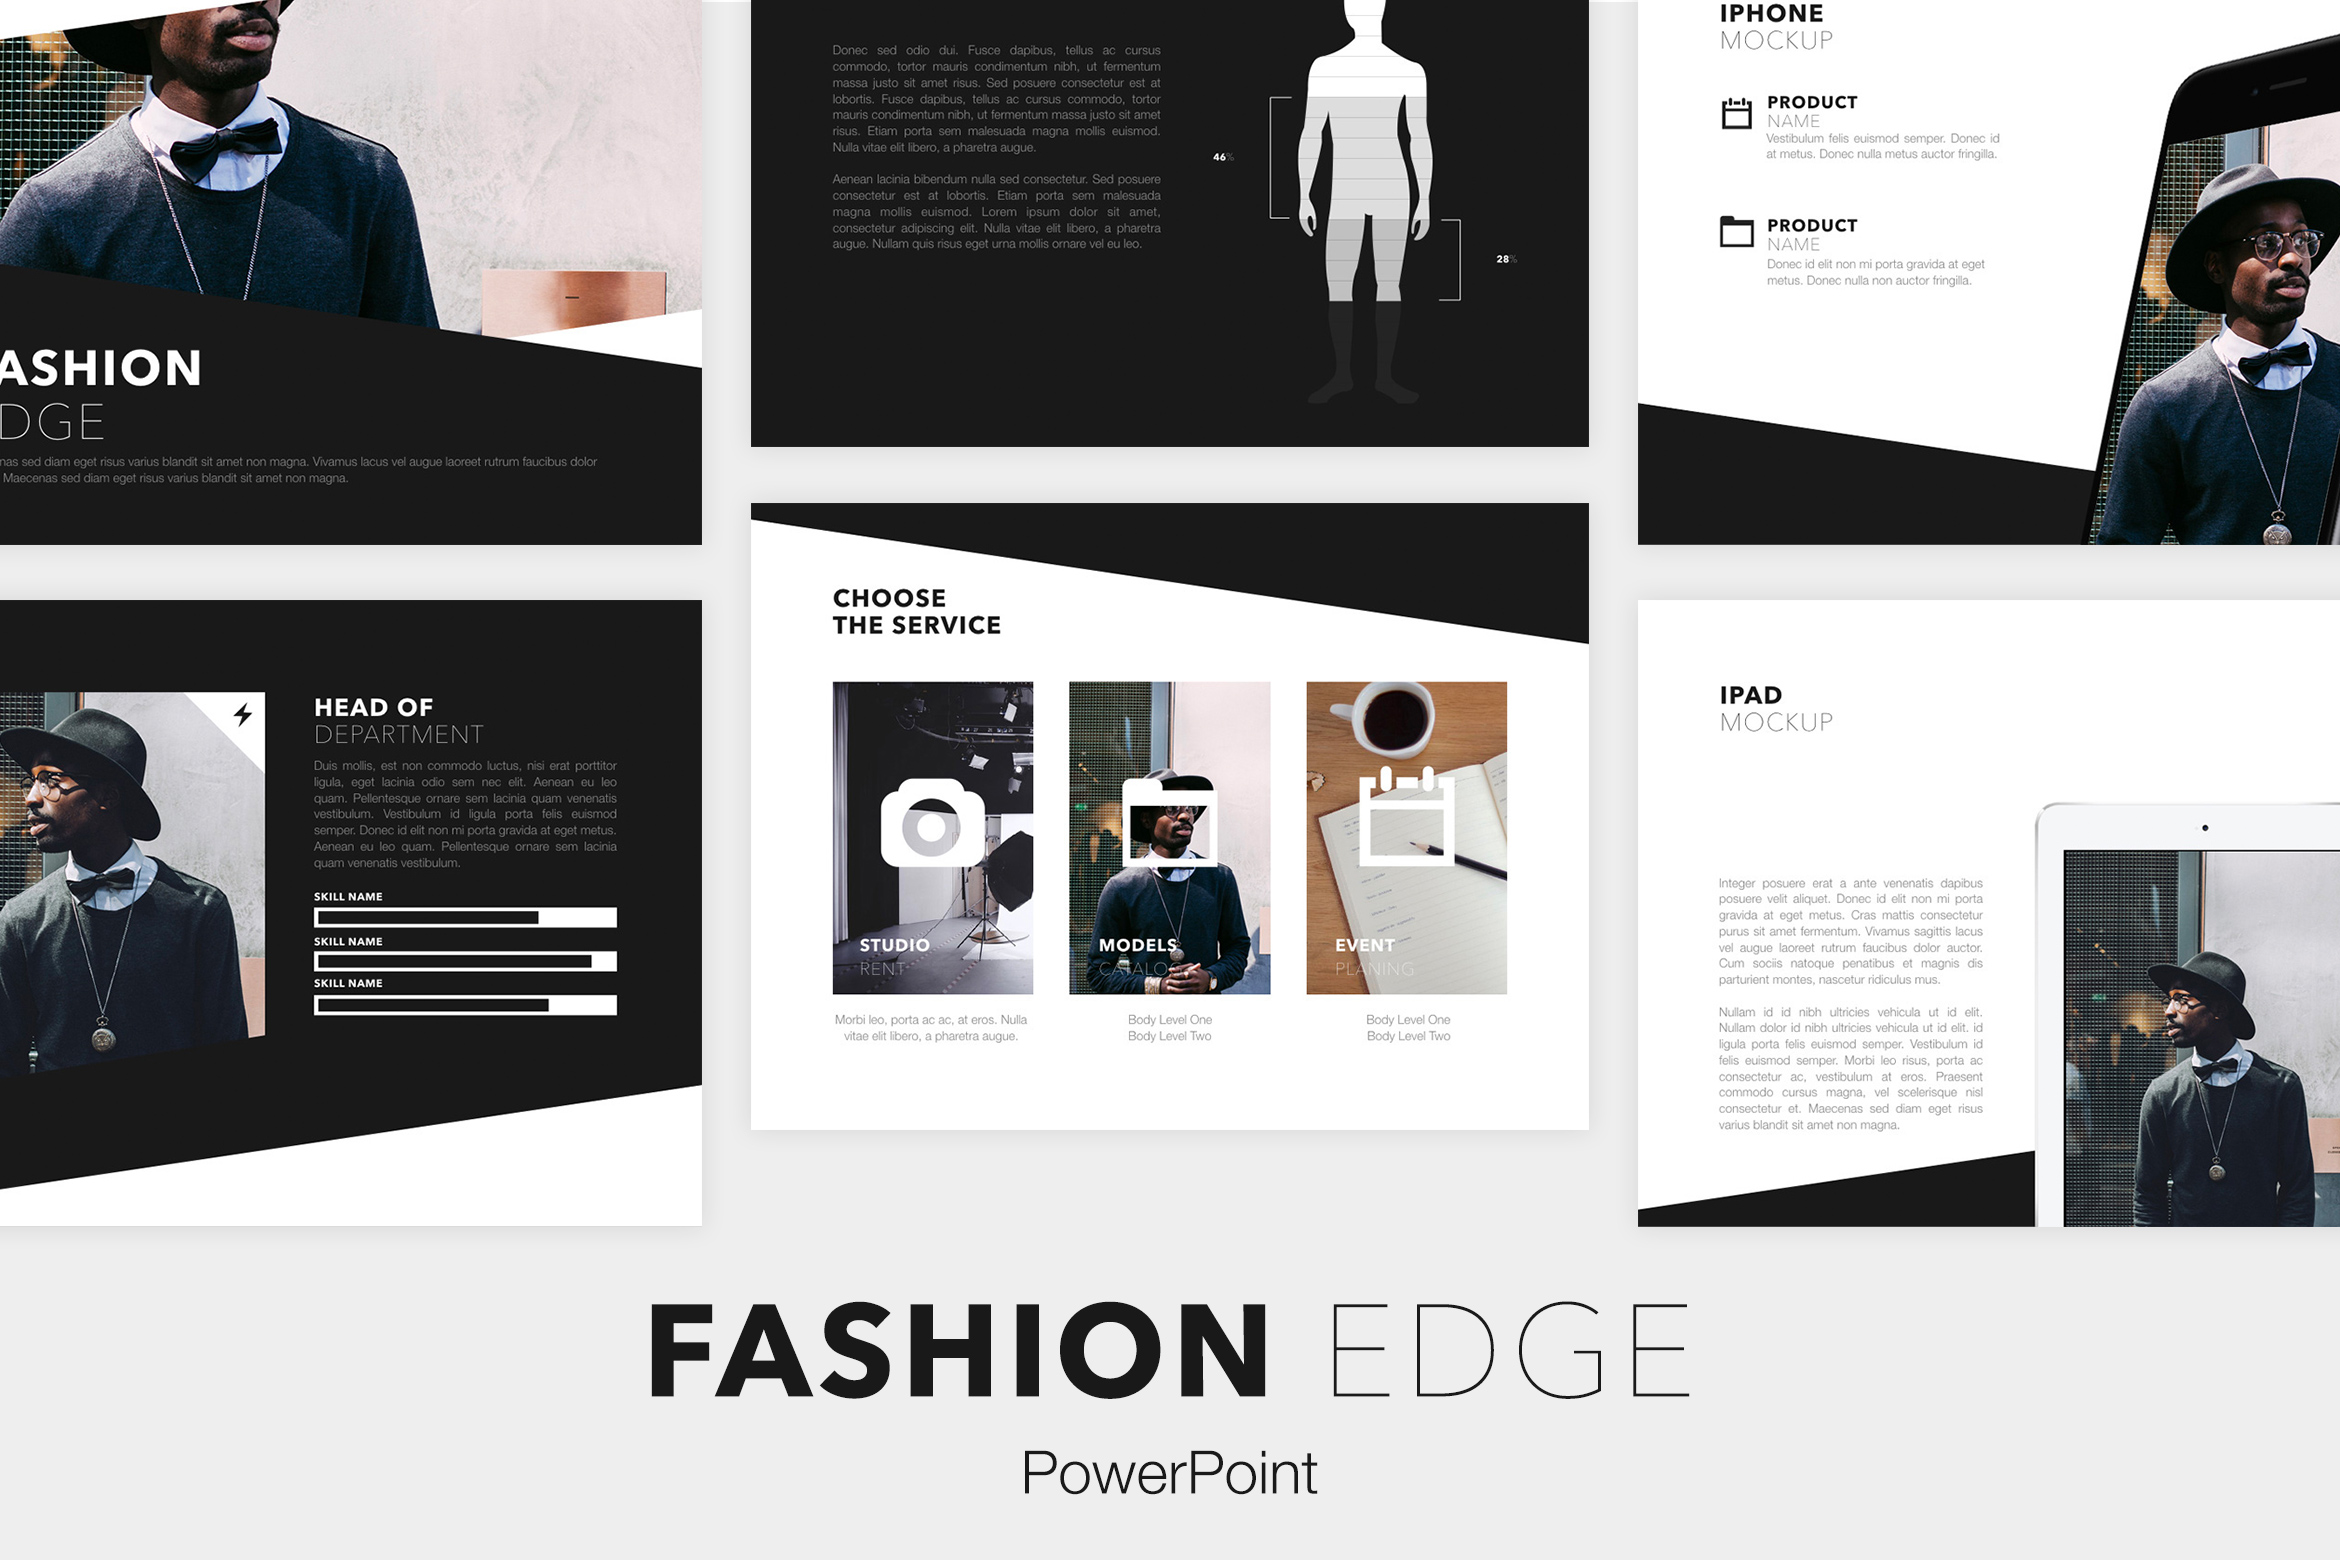 Fashion Edge PowerPoint Template example image 1